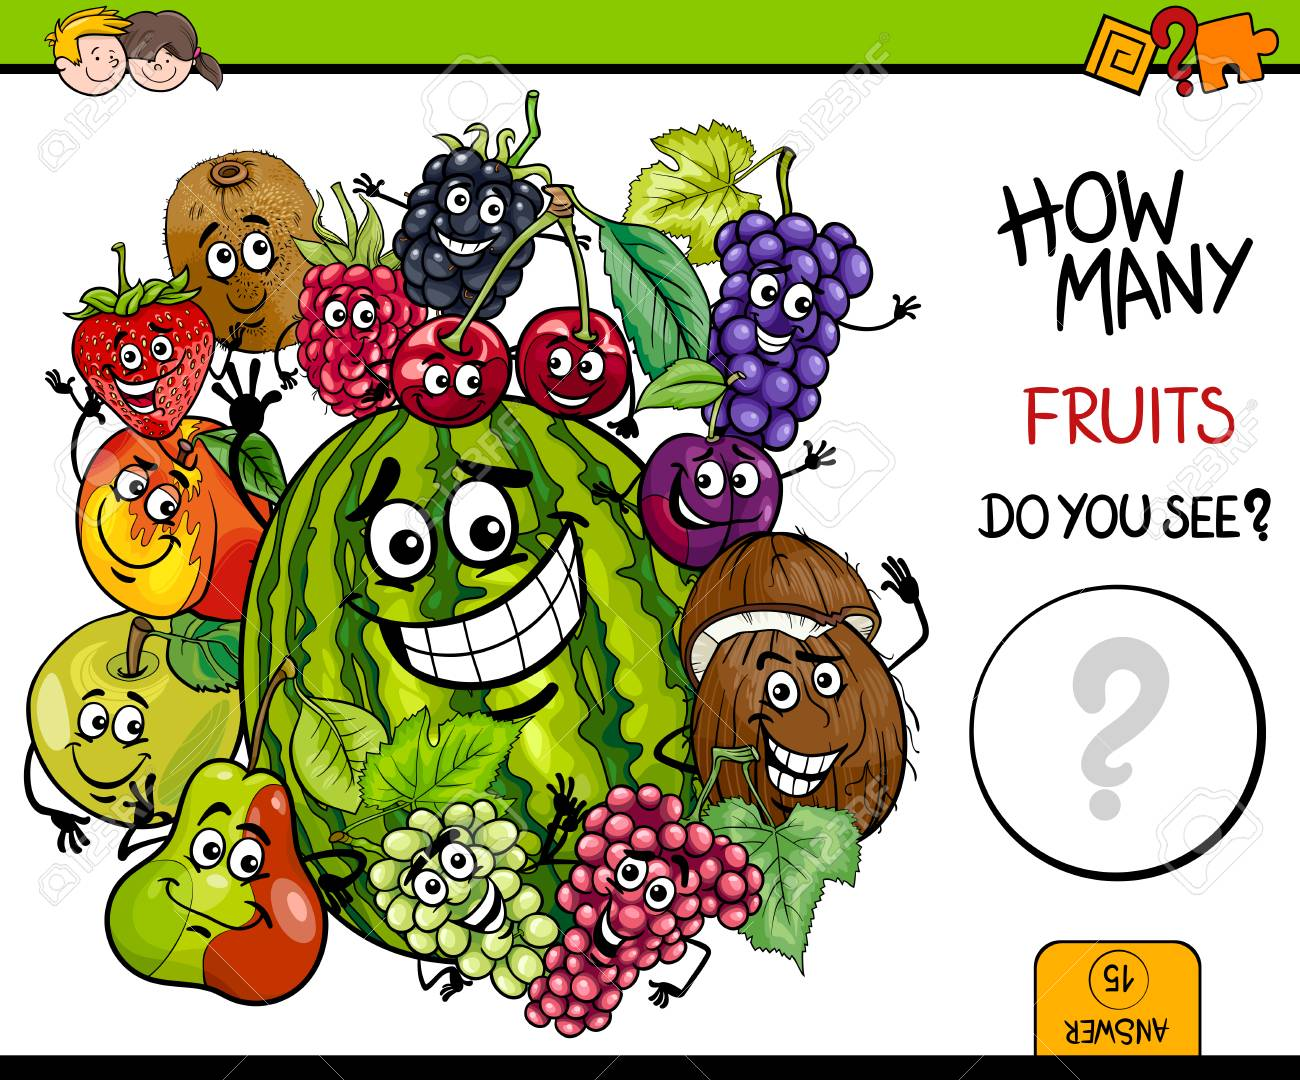 Cartoon Illustration of Educational Counting Activity Game for Children with Fruit Characters Group - 79341204